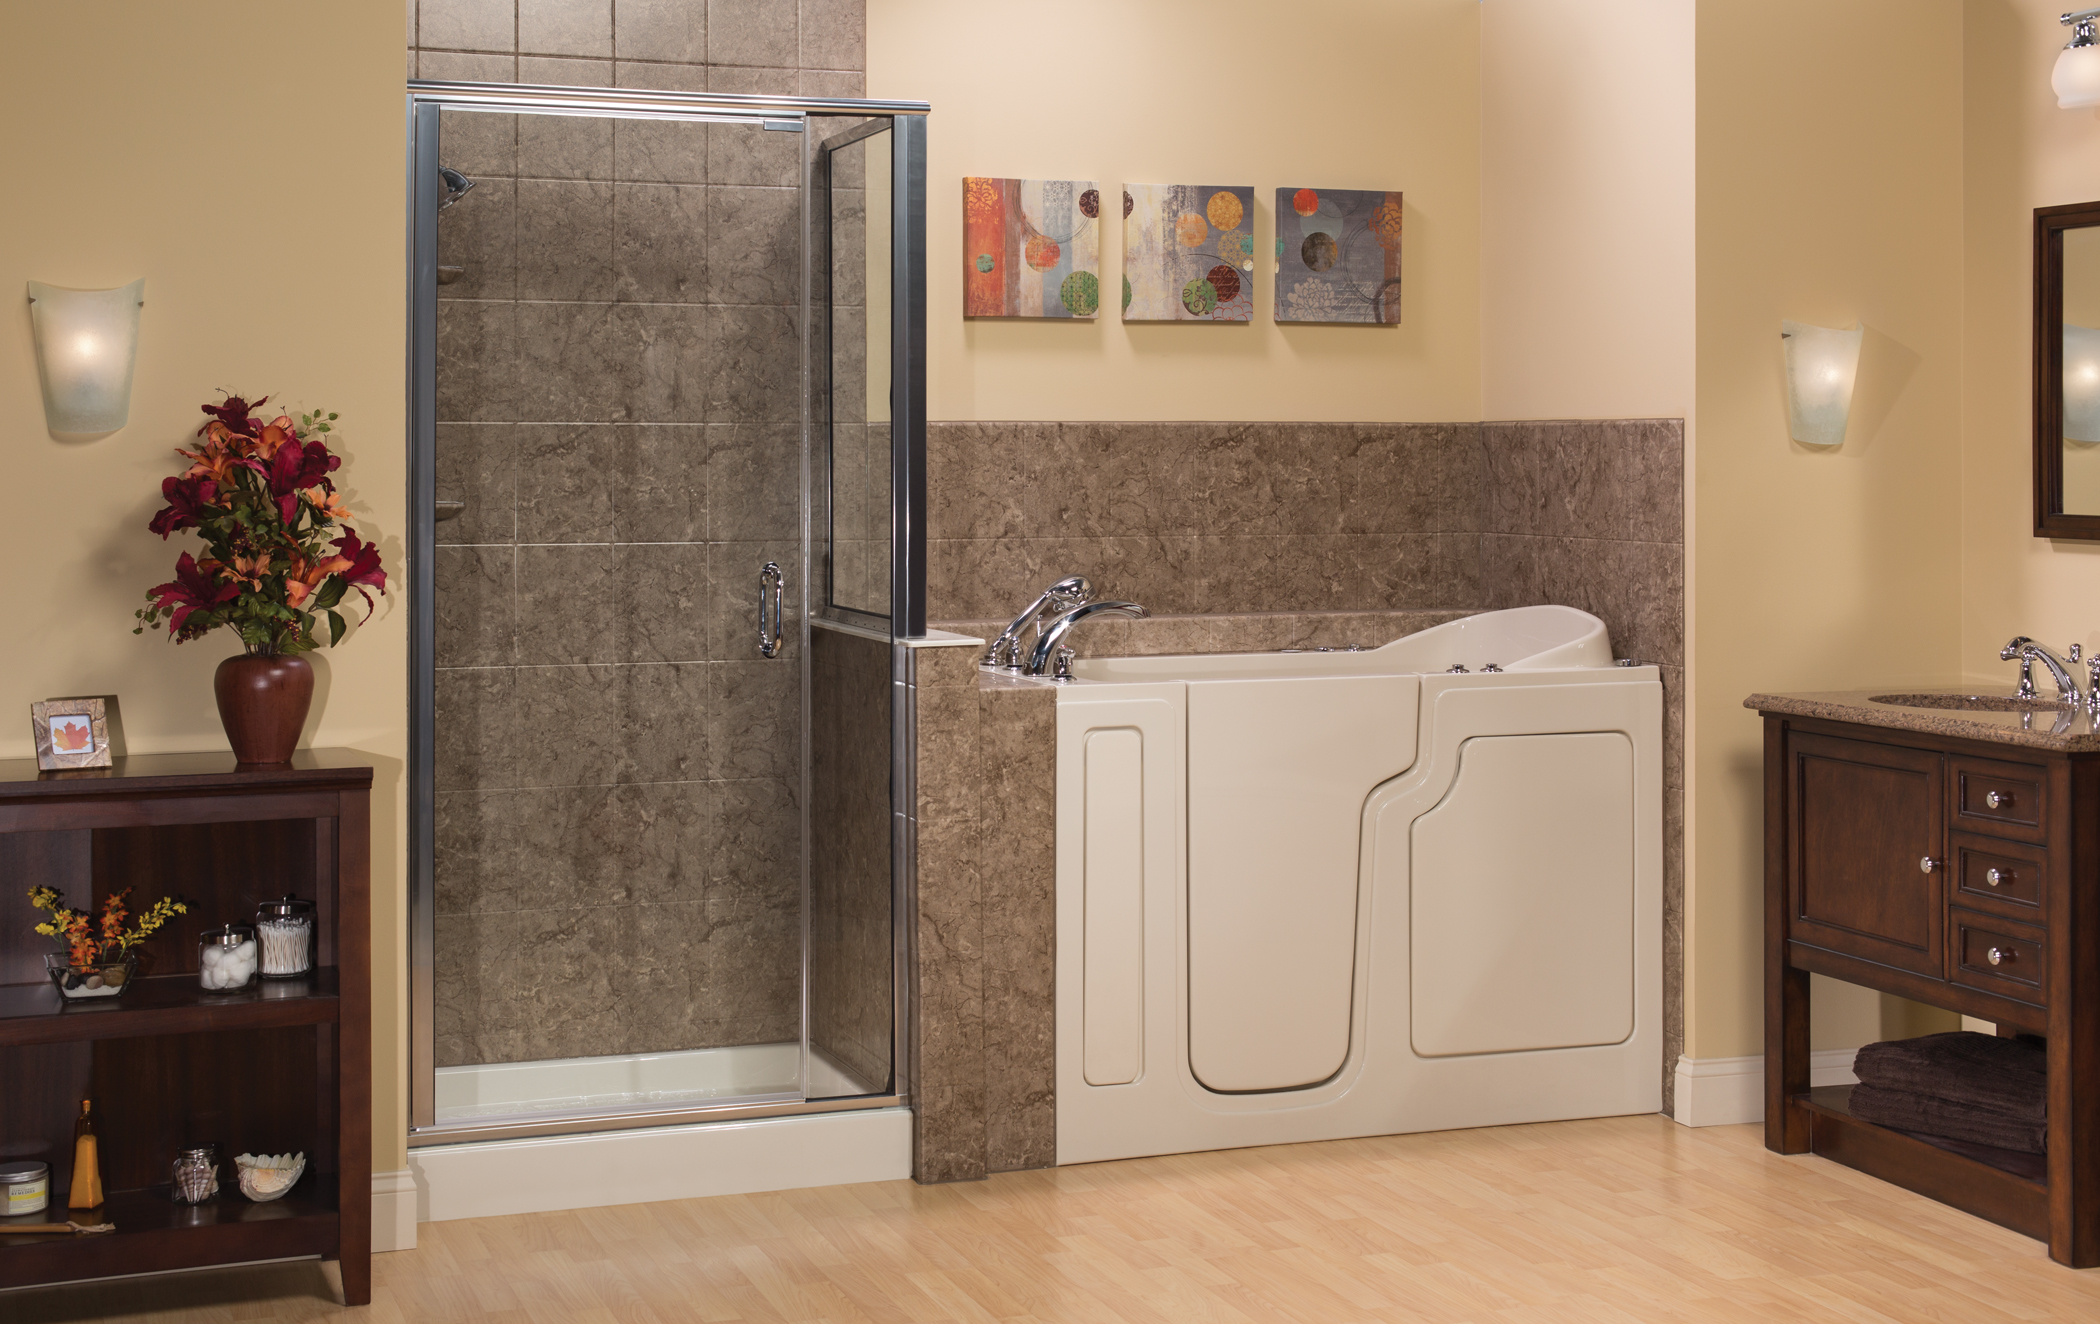 Bathroom Renovations Kamloops | Bath Pro Kamloops, BC